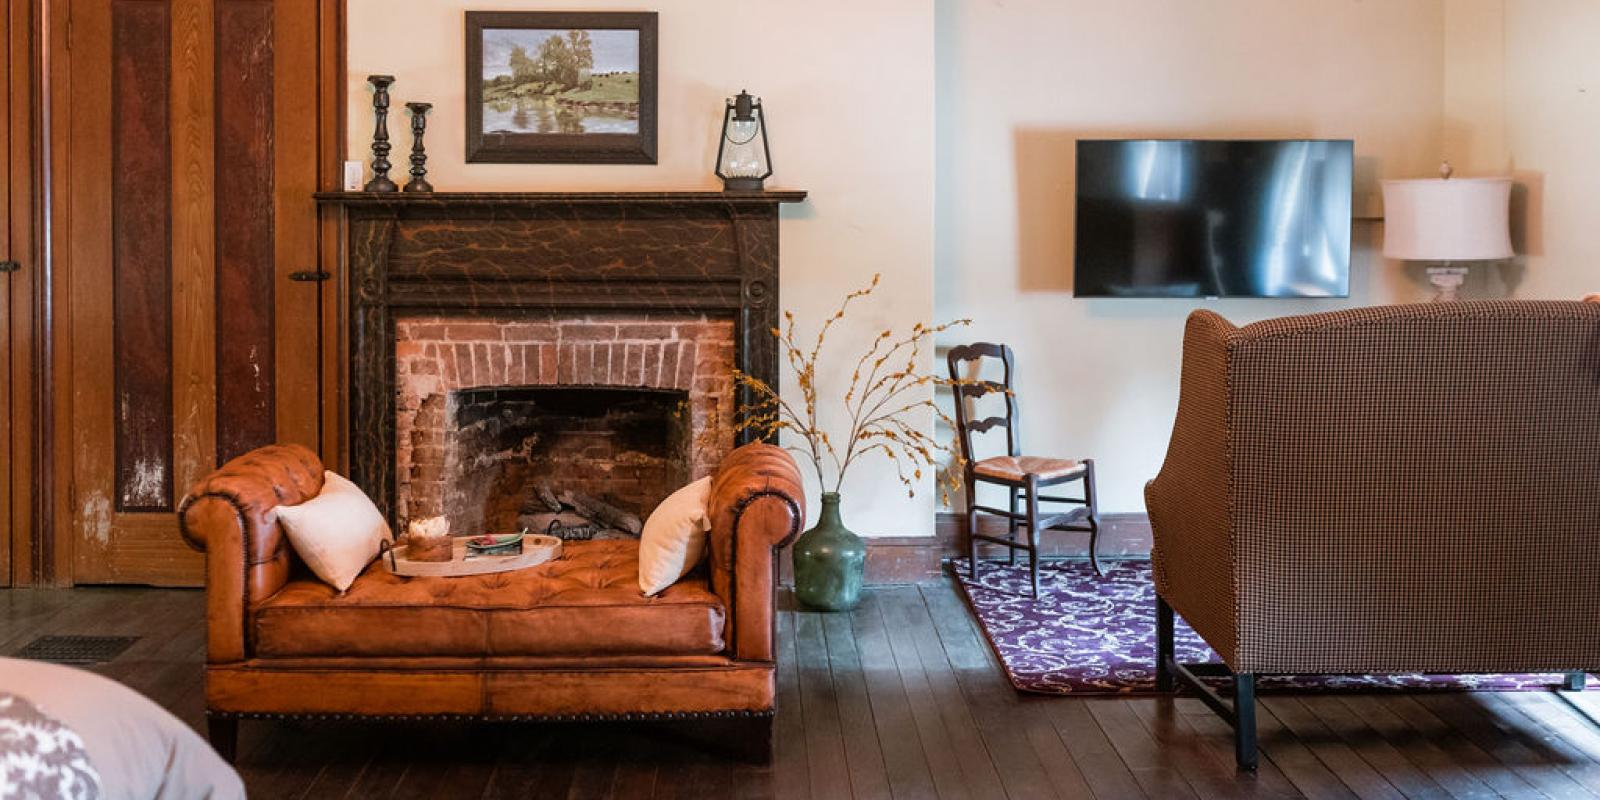 Ample spaces appointed with comfortable furnishing, TVs, fireplaces, and more